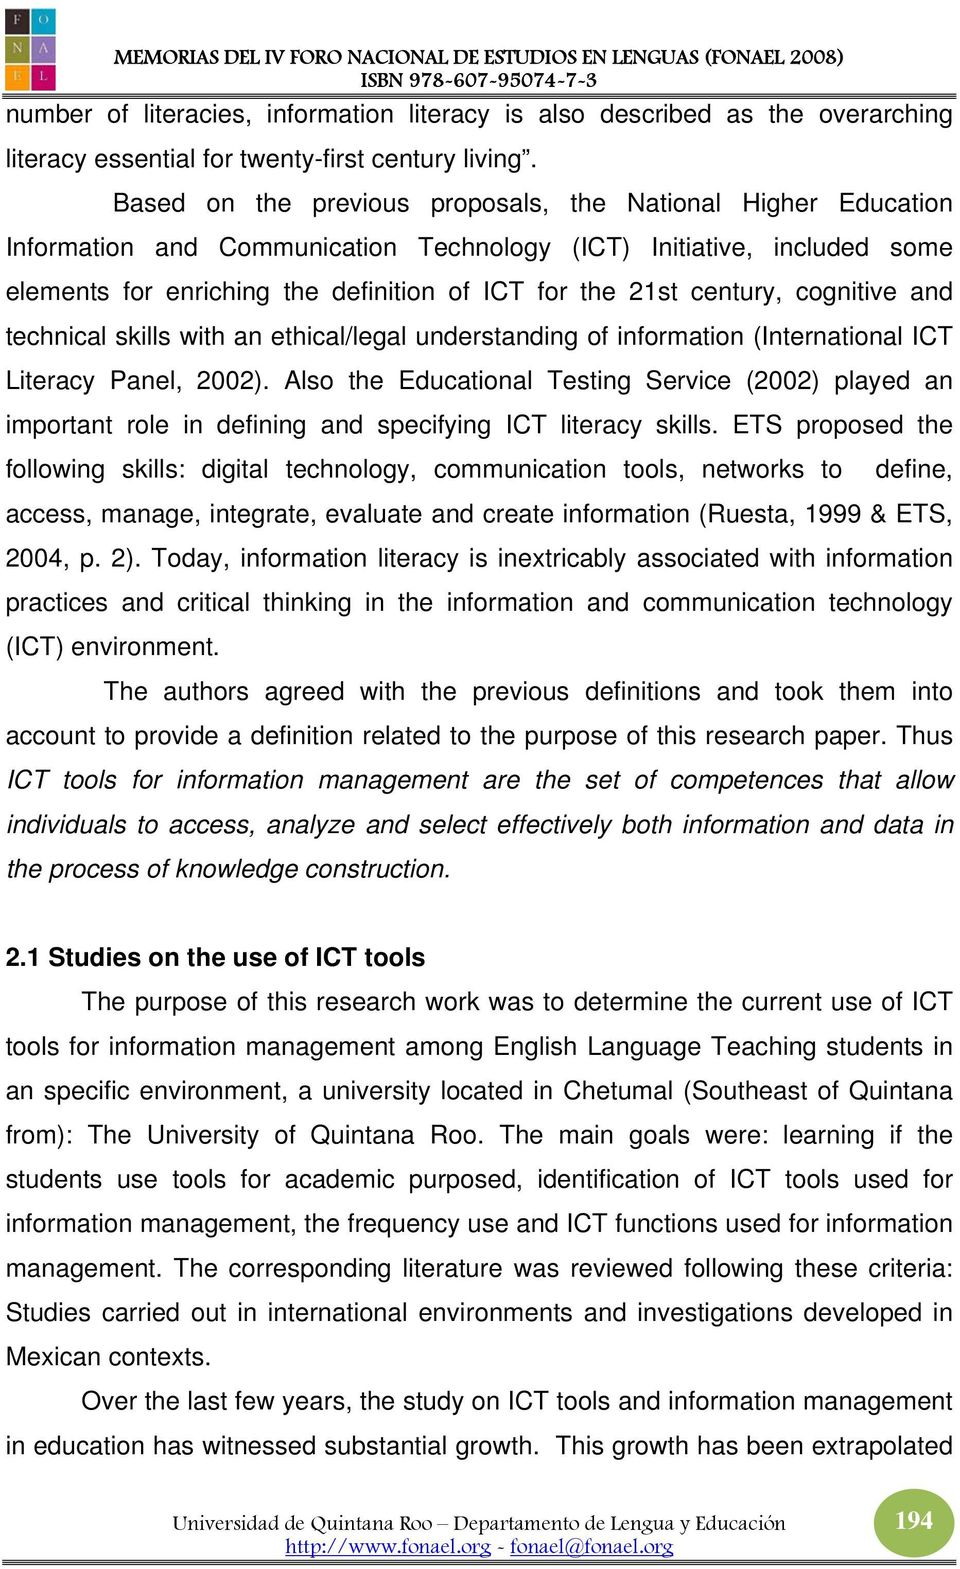 century, cognitive and technical skills with an ethical/legal understanding of information (International ICT Literacy Panel, 2002).